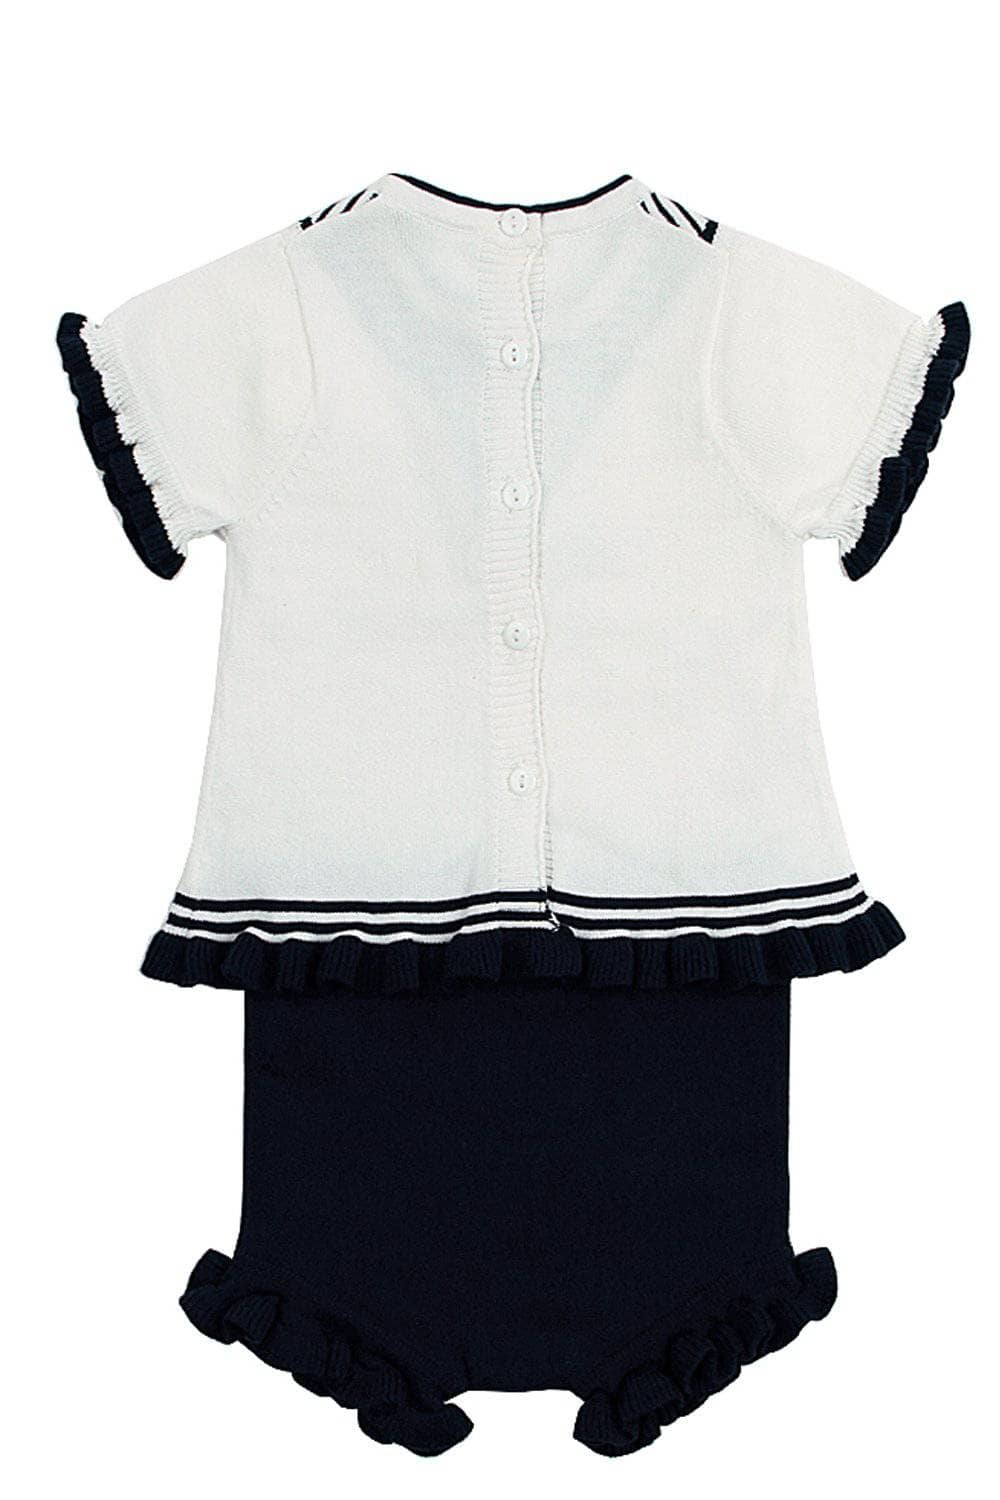 a82b3814cabb White Navy Ruffled T-shirt and Panty Baby Suit by Victory Roze